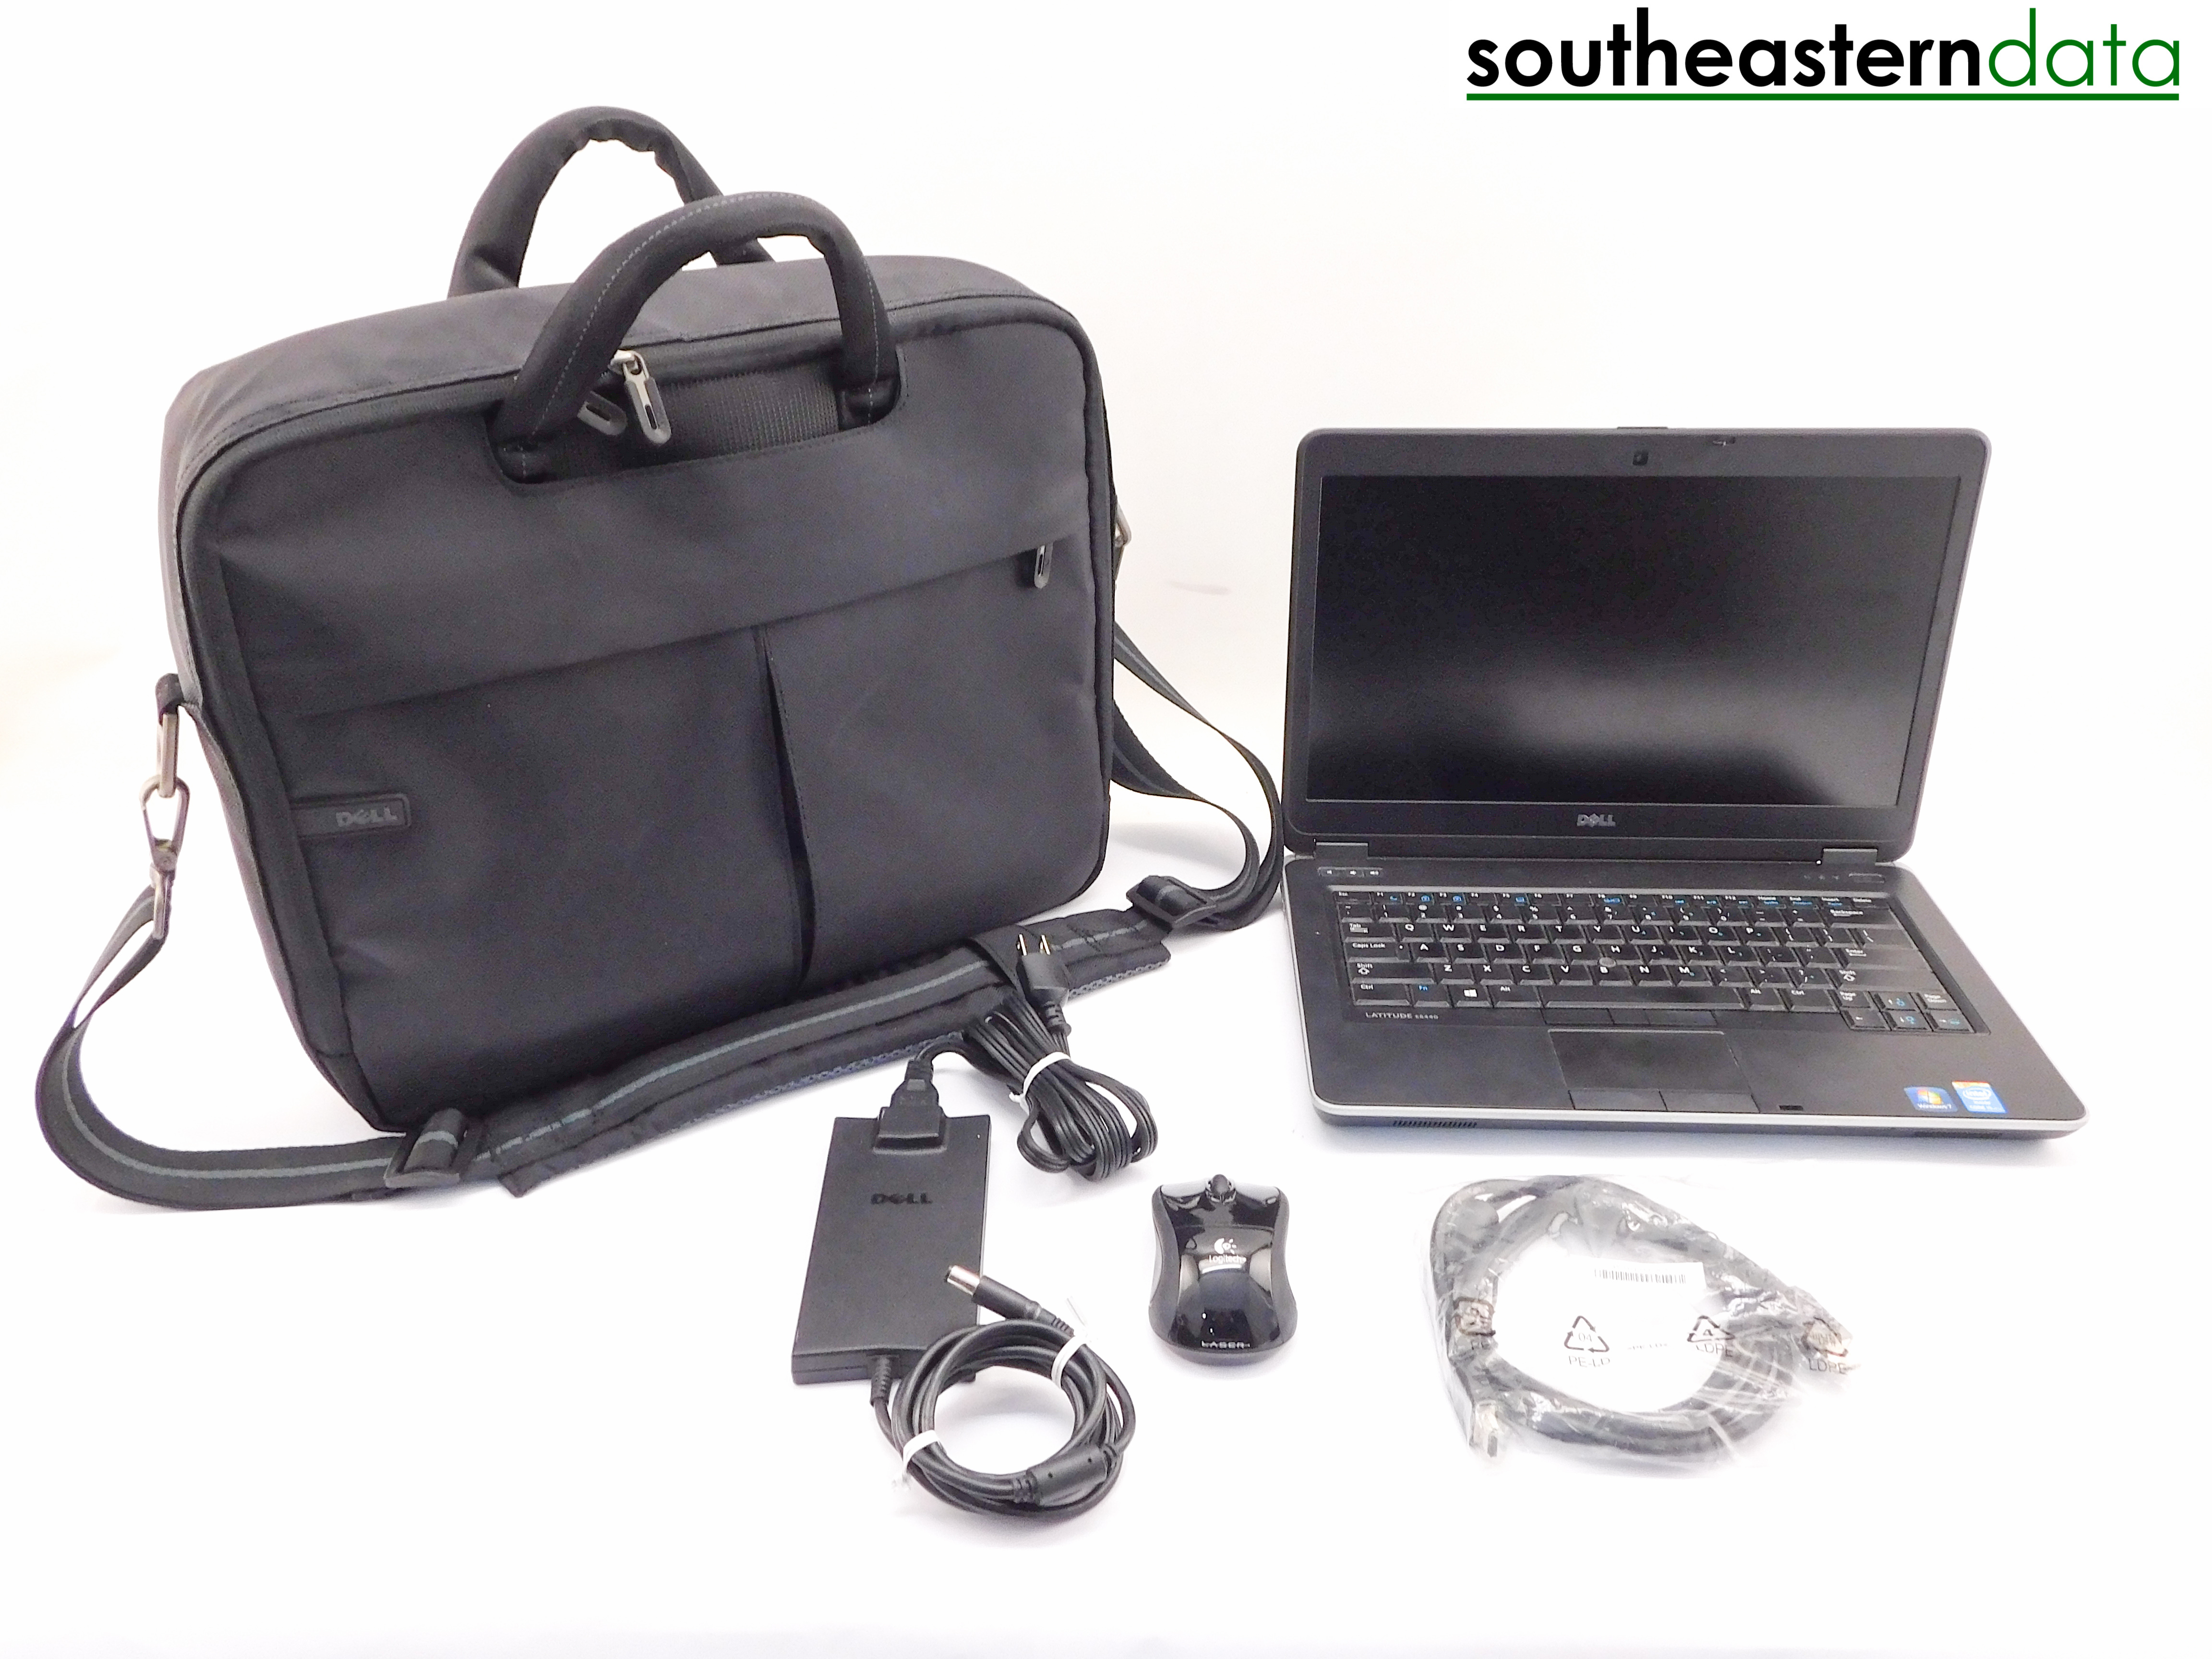 Dell Latitude E6440 14' i5-4300M 2.60GHz 8GB RAM 320GB HDD Win 7 Pro